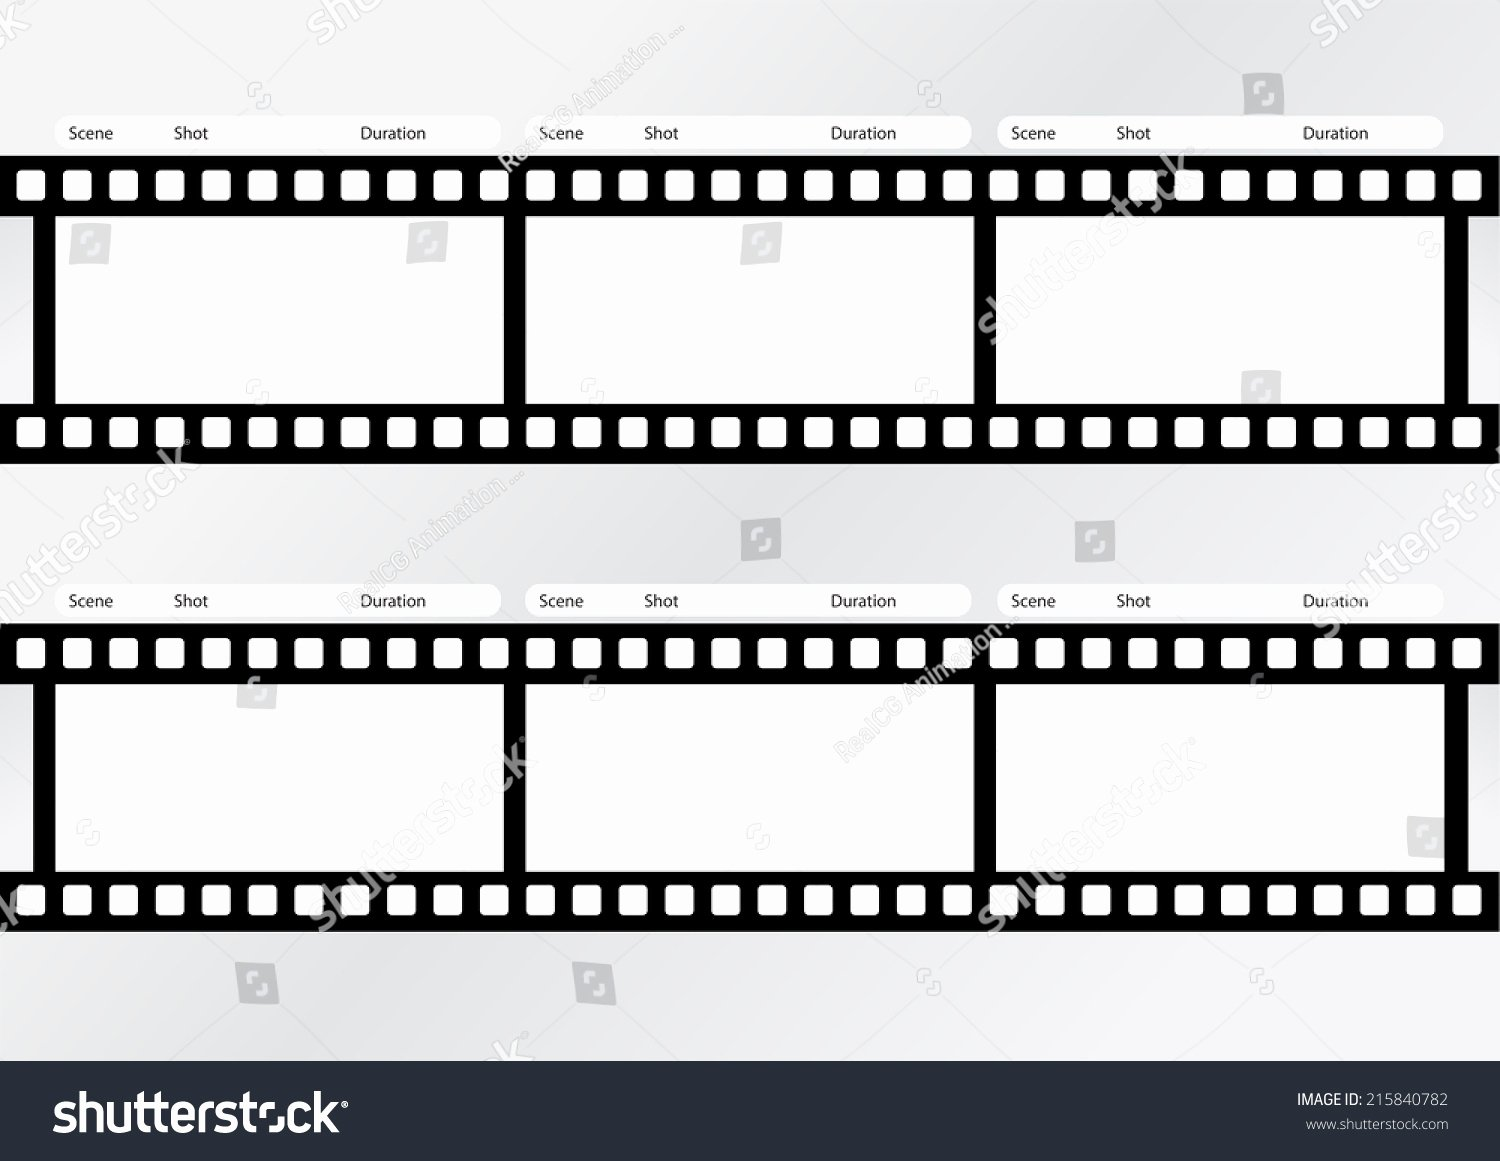 Professional Of Film Storyboard Template for Easy to